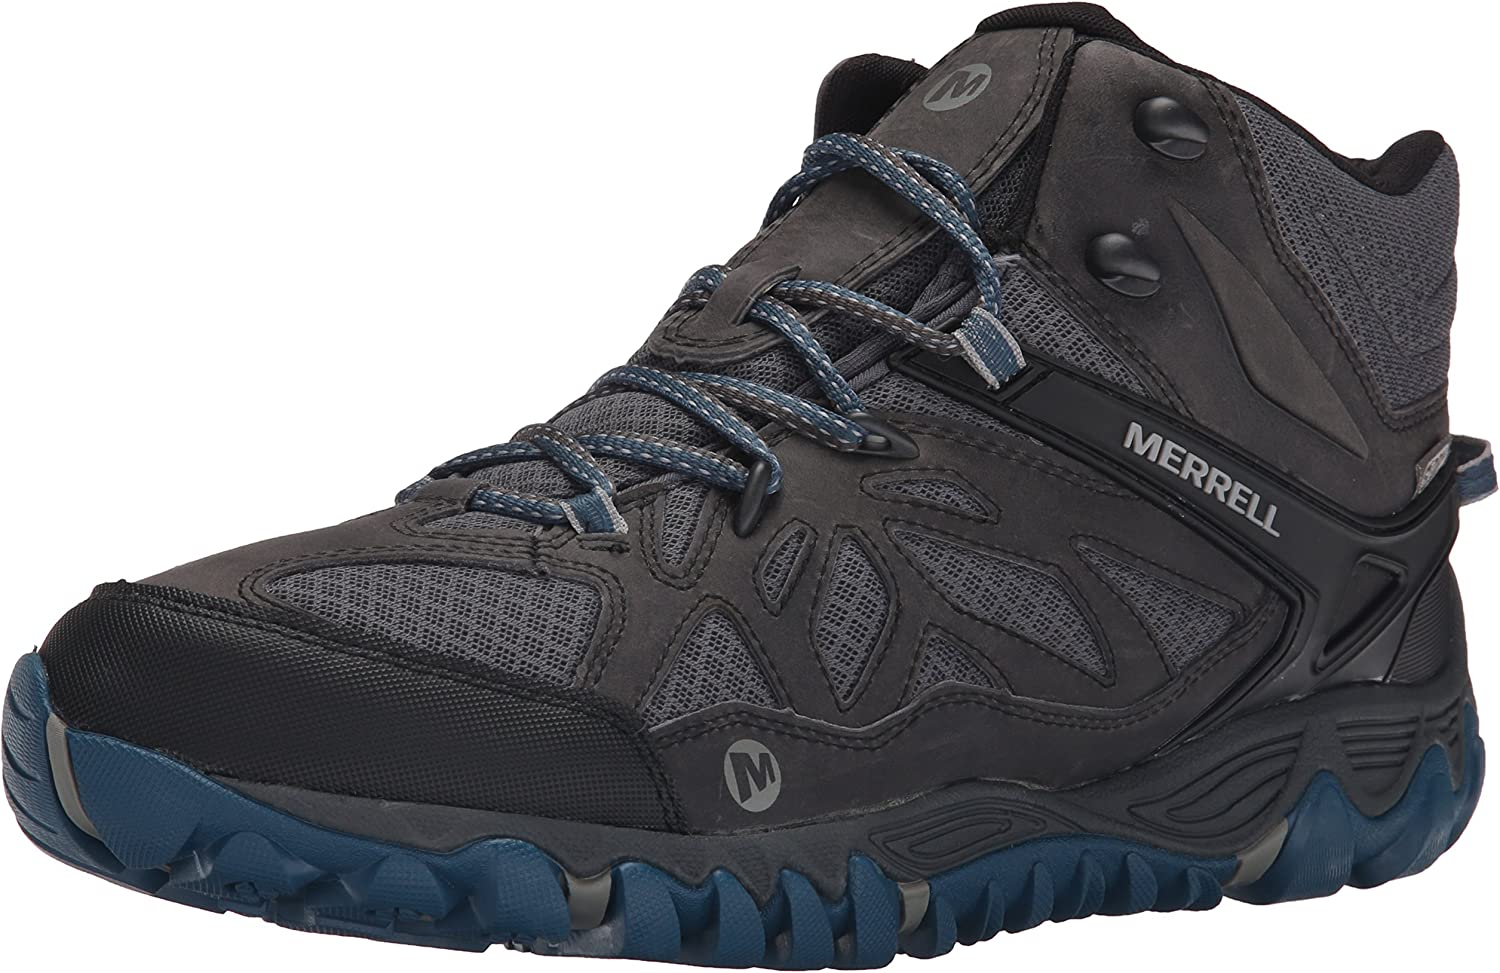 Merrell Men's All Out Blaze Vent Mid Waterproof Hiking Boot Grey